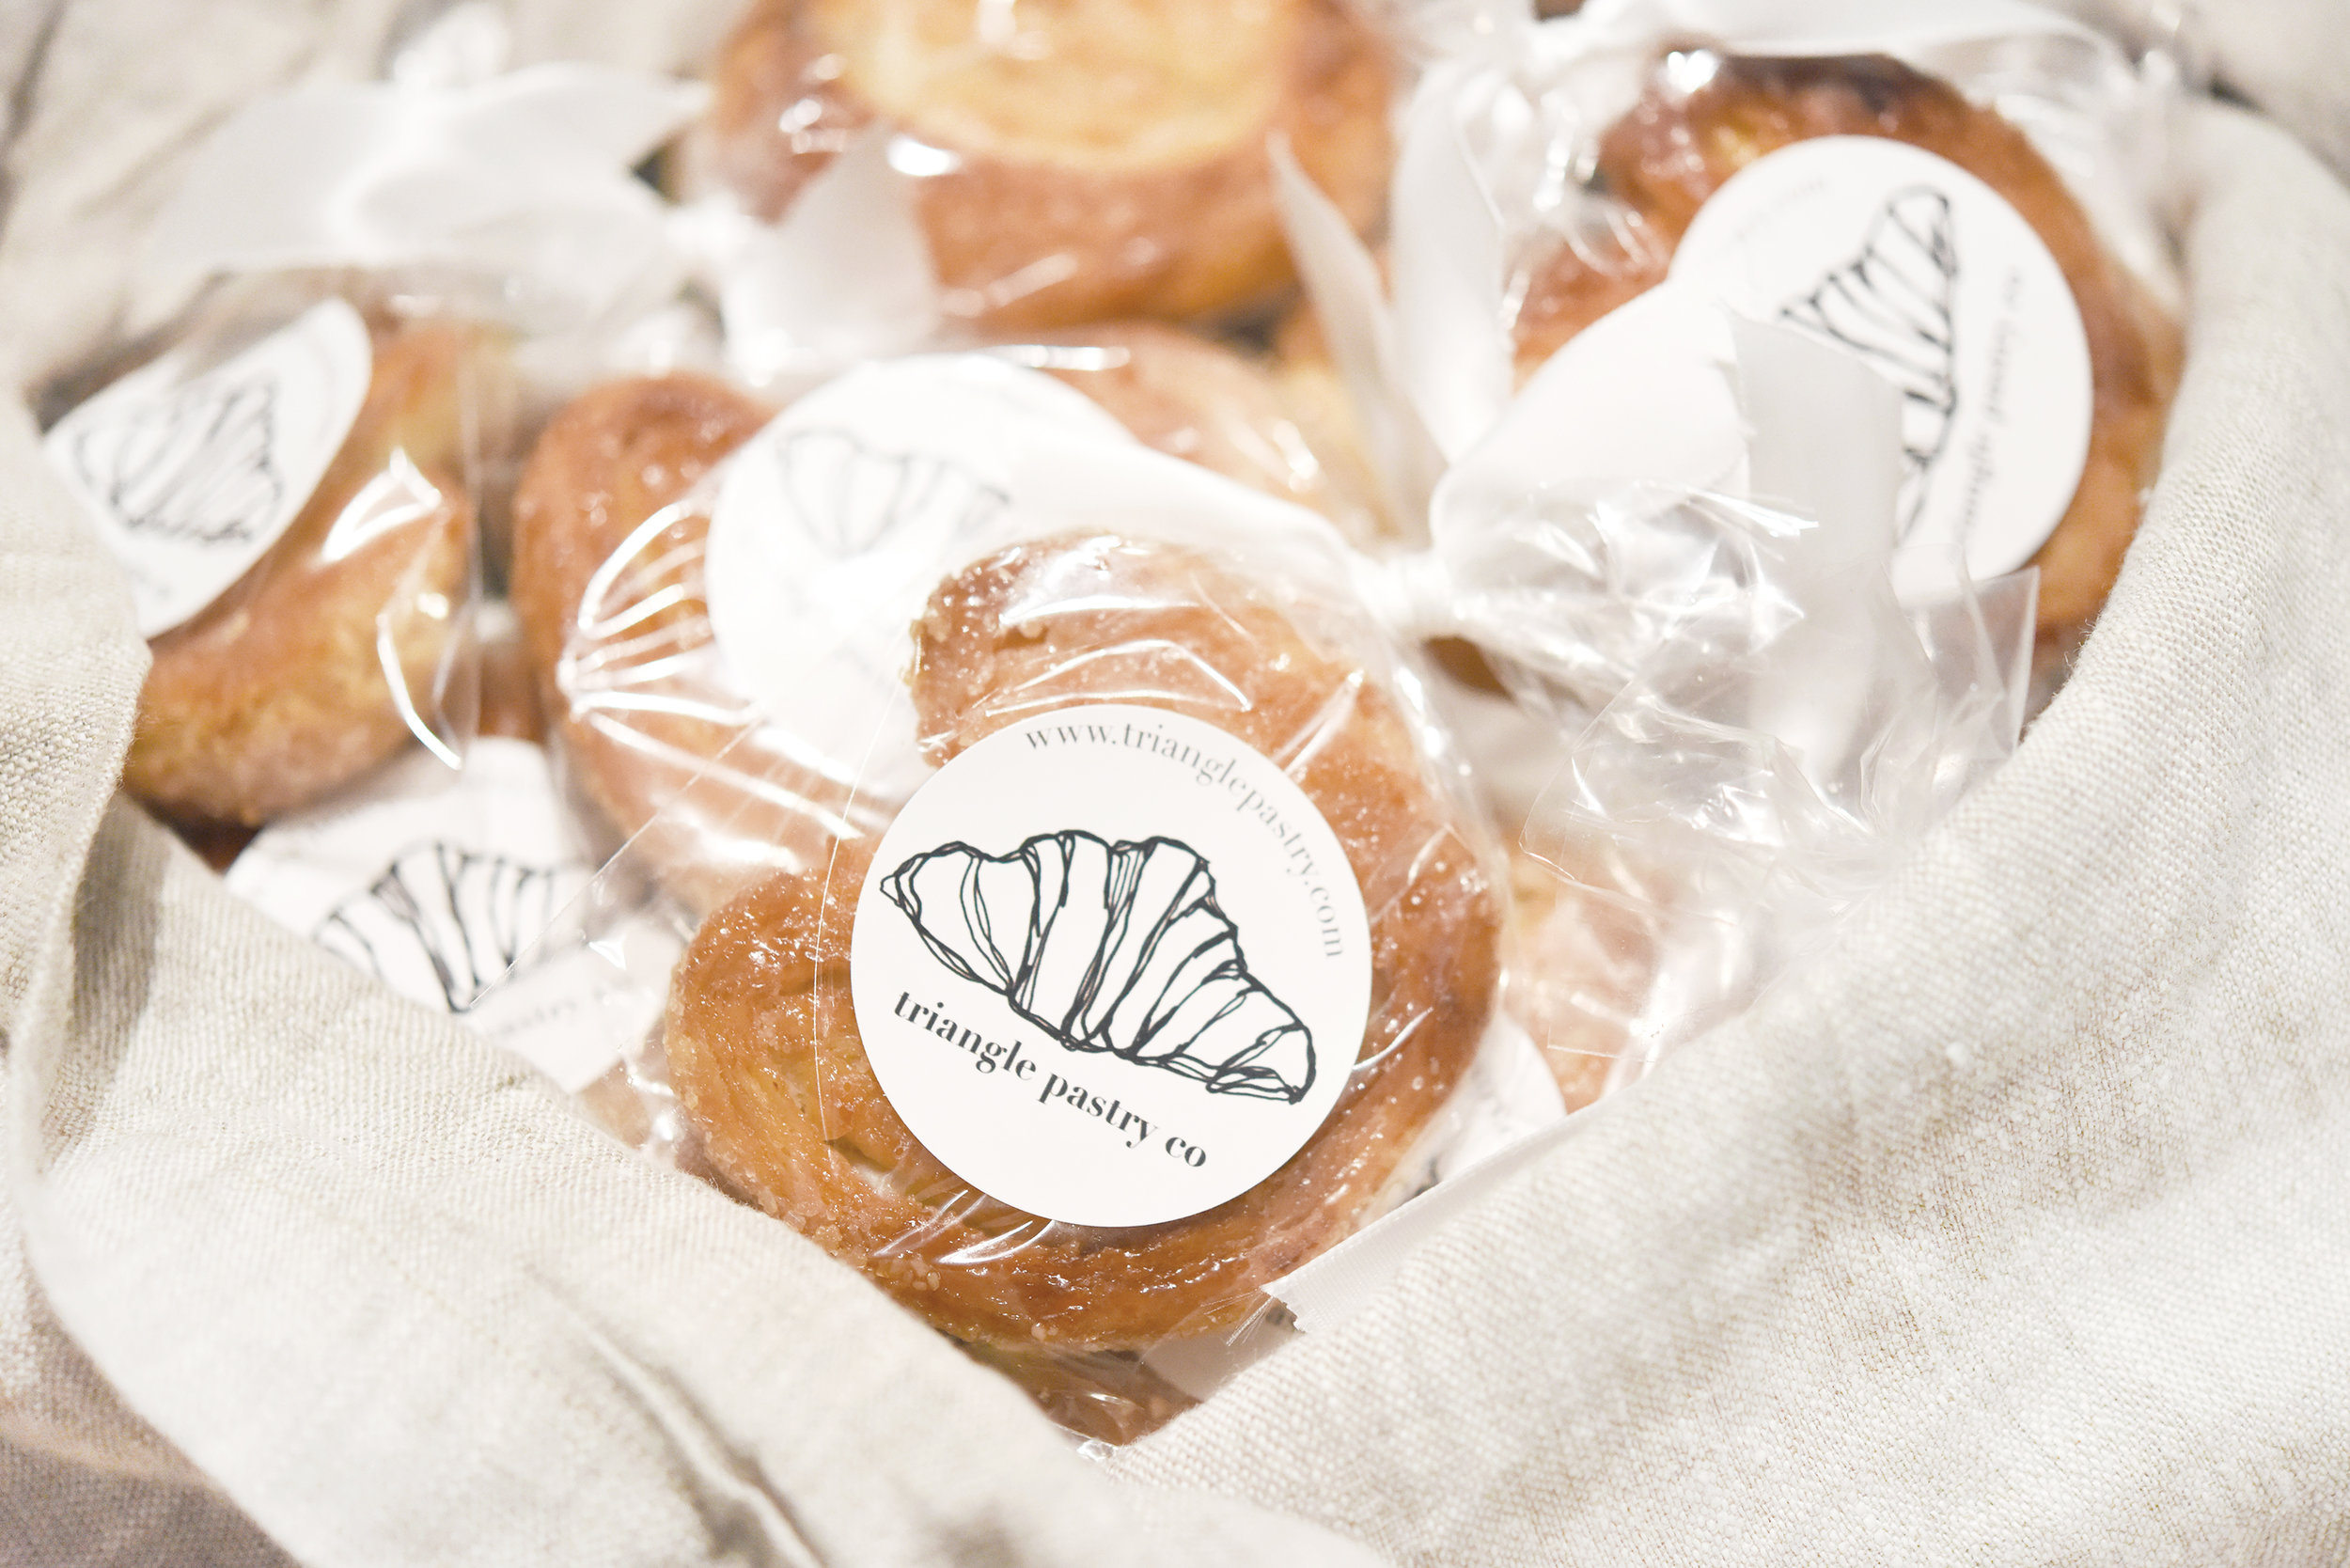 Our individually packaged palmiers were given out as VIP party favors.